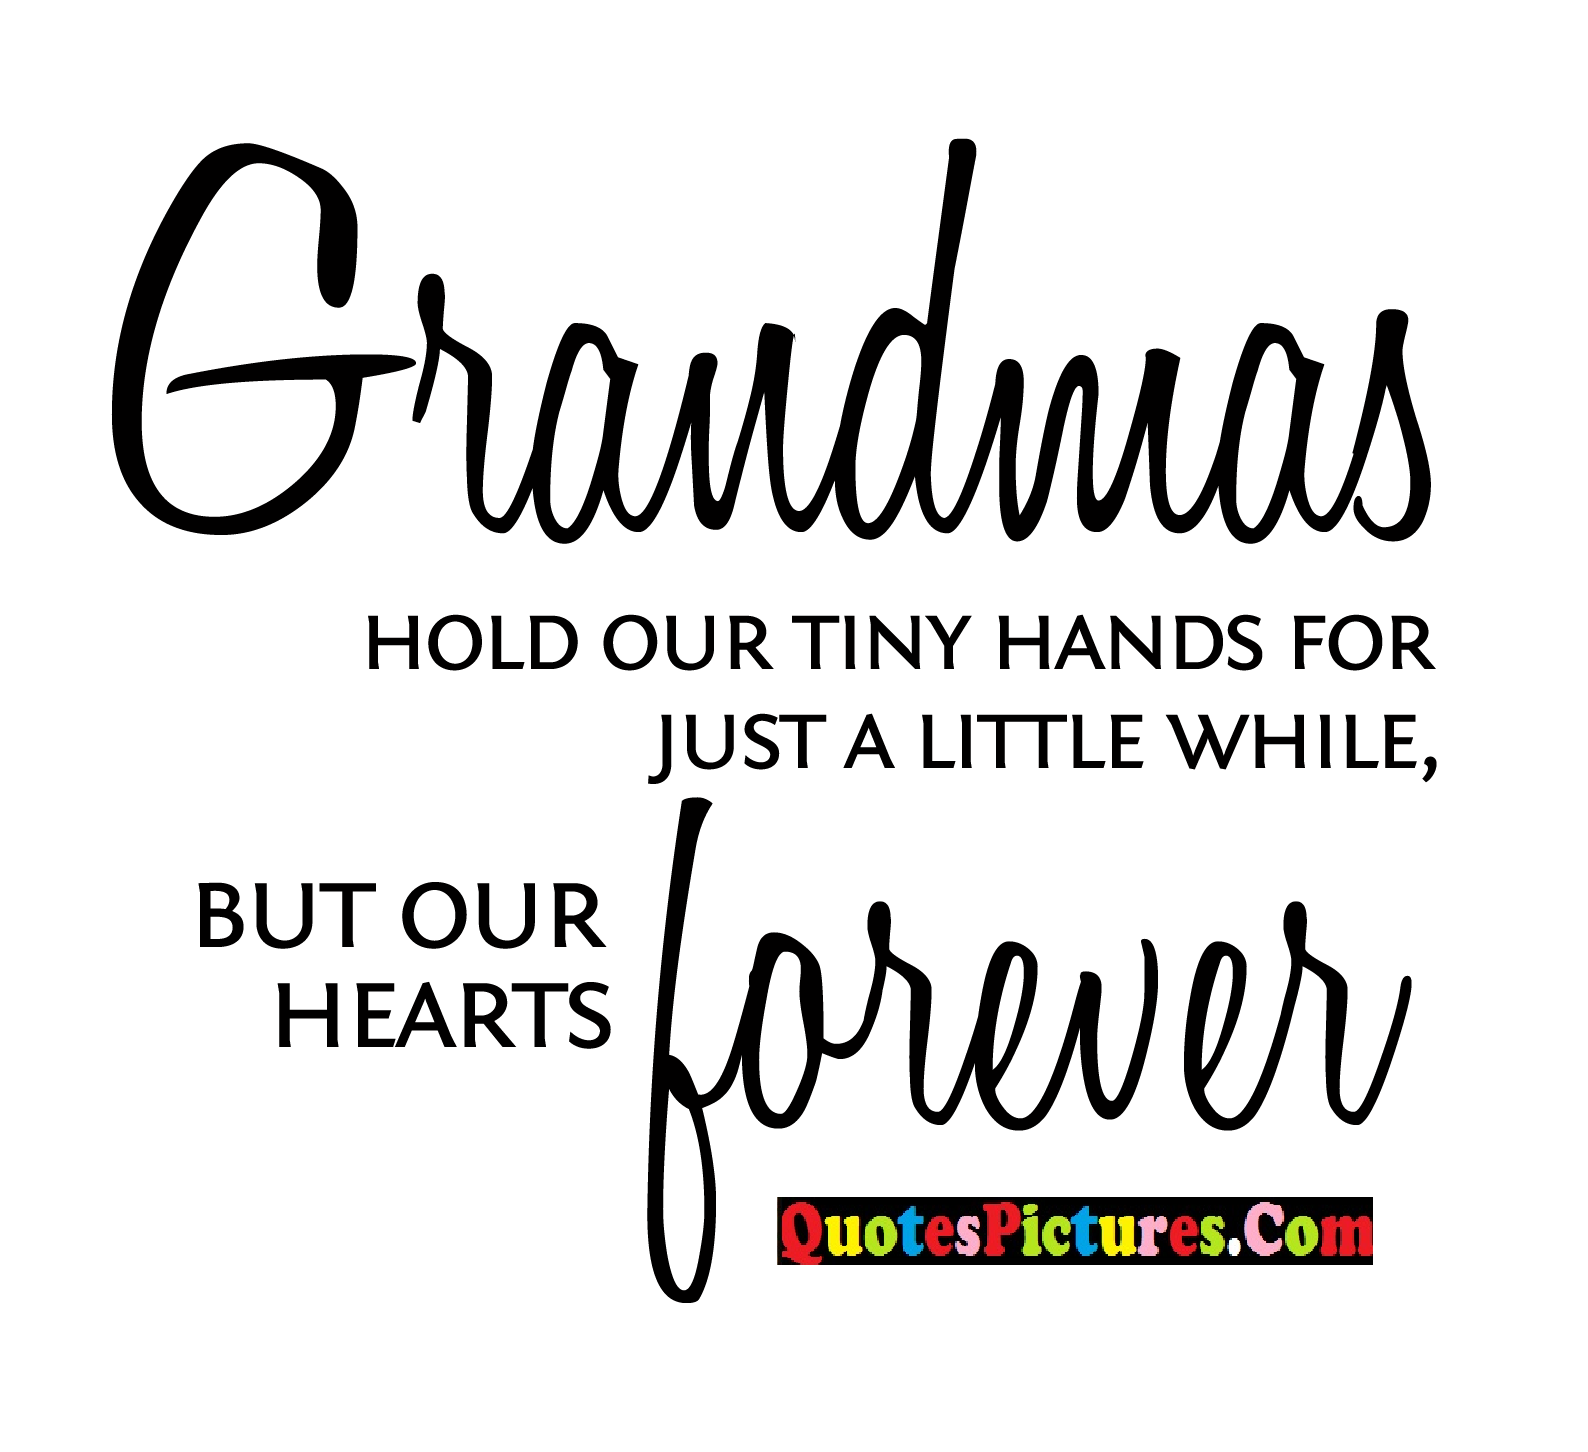 Inpiration Grandmother Quote - Grandmas Hold Our Tiny Hands For Just A Little While, but Our Hearts Forever.